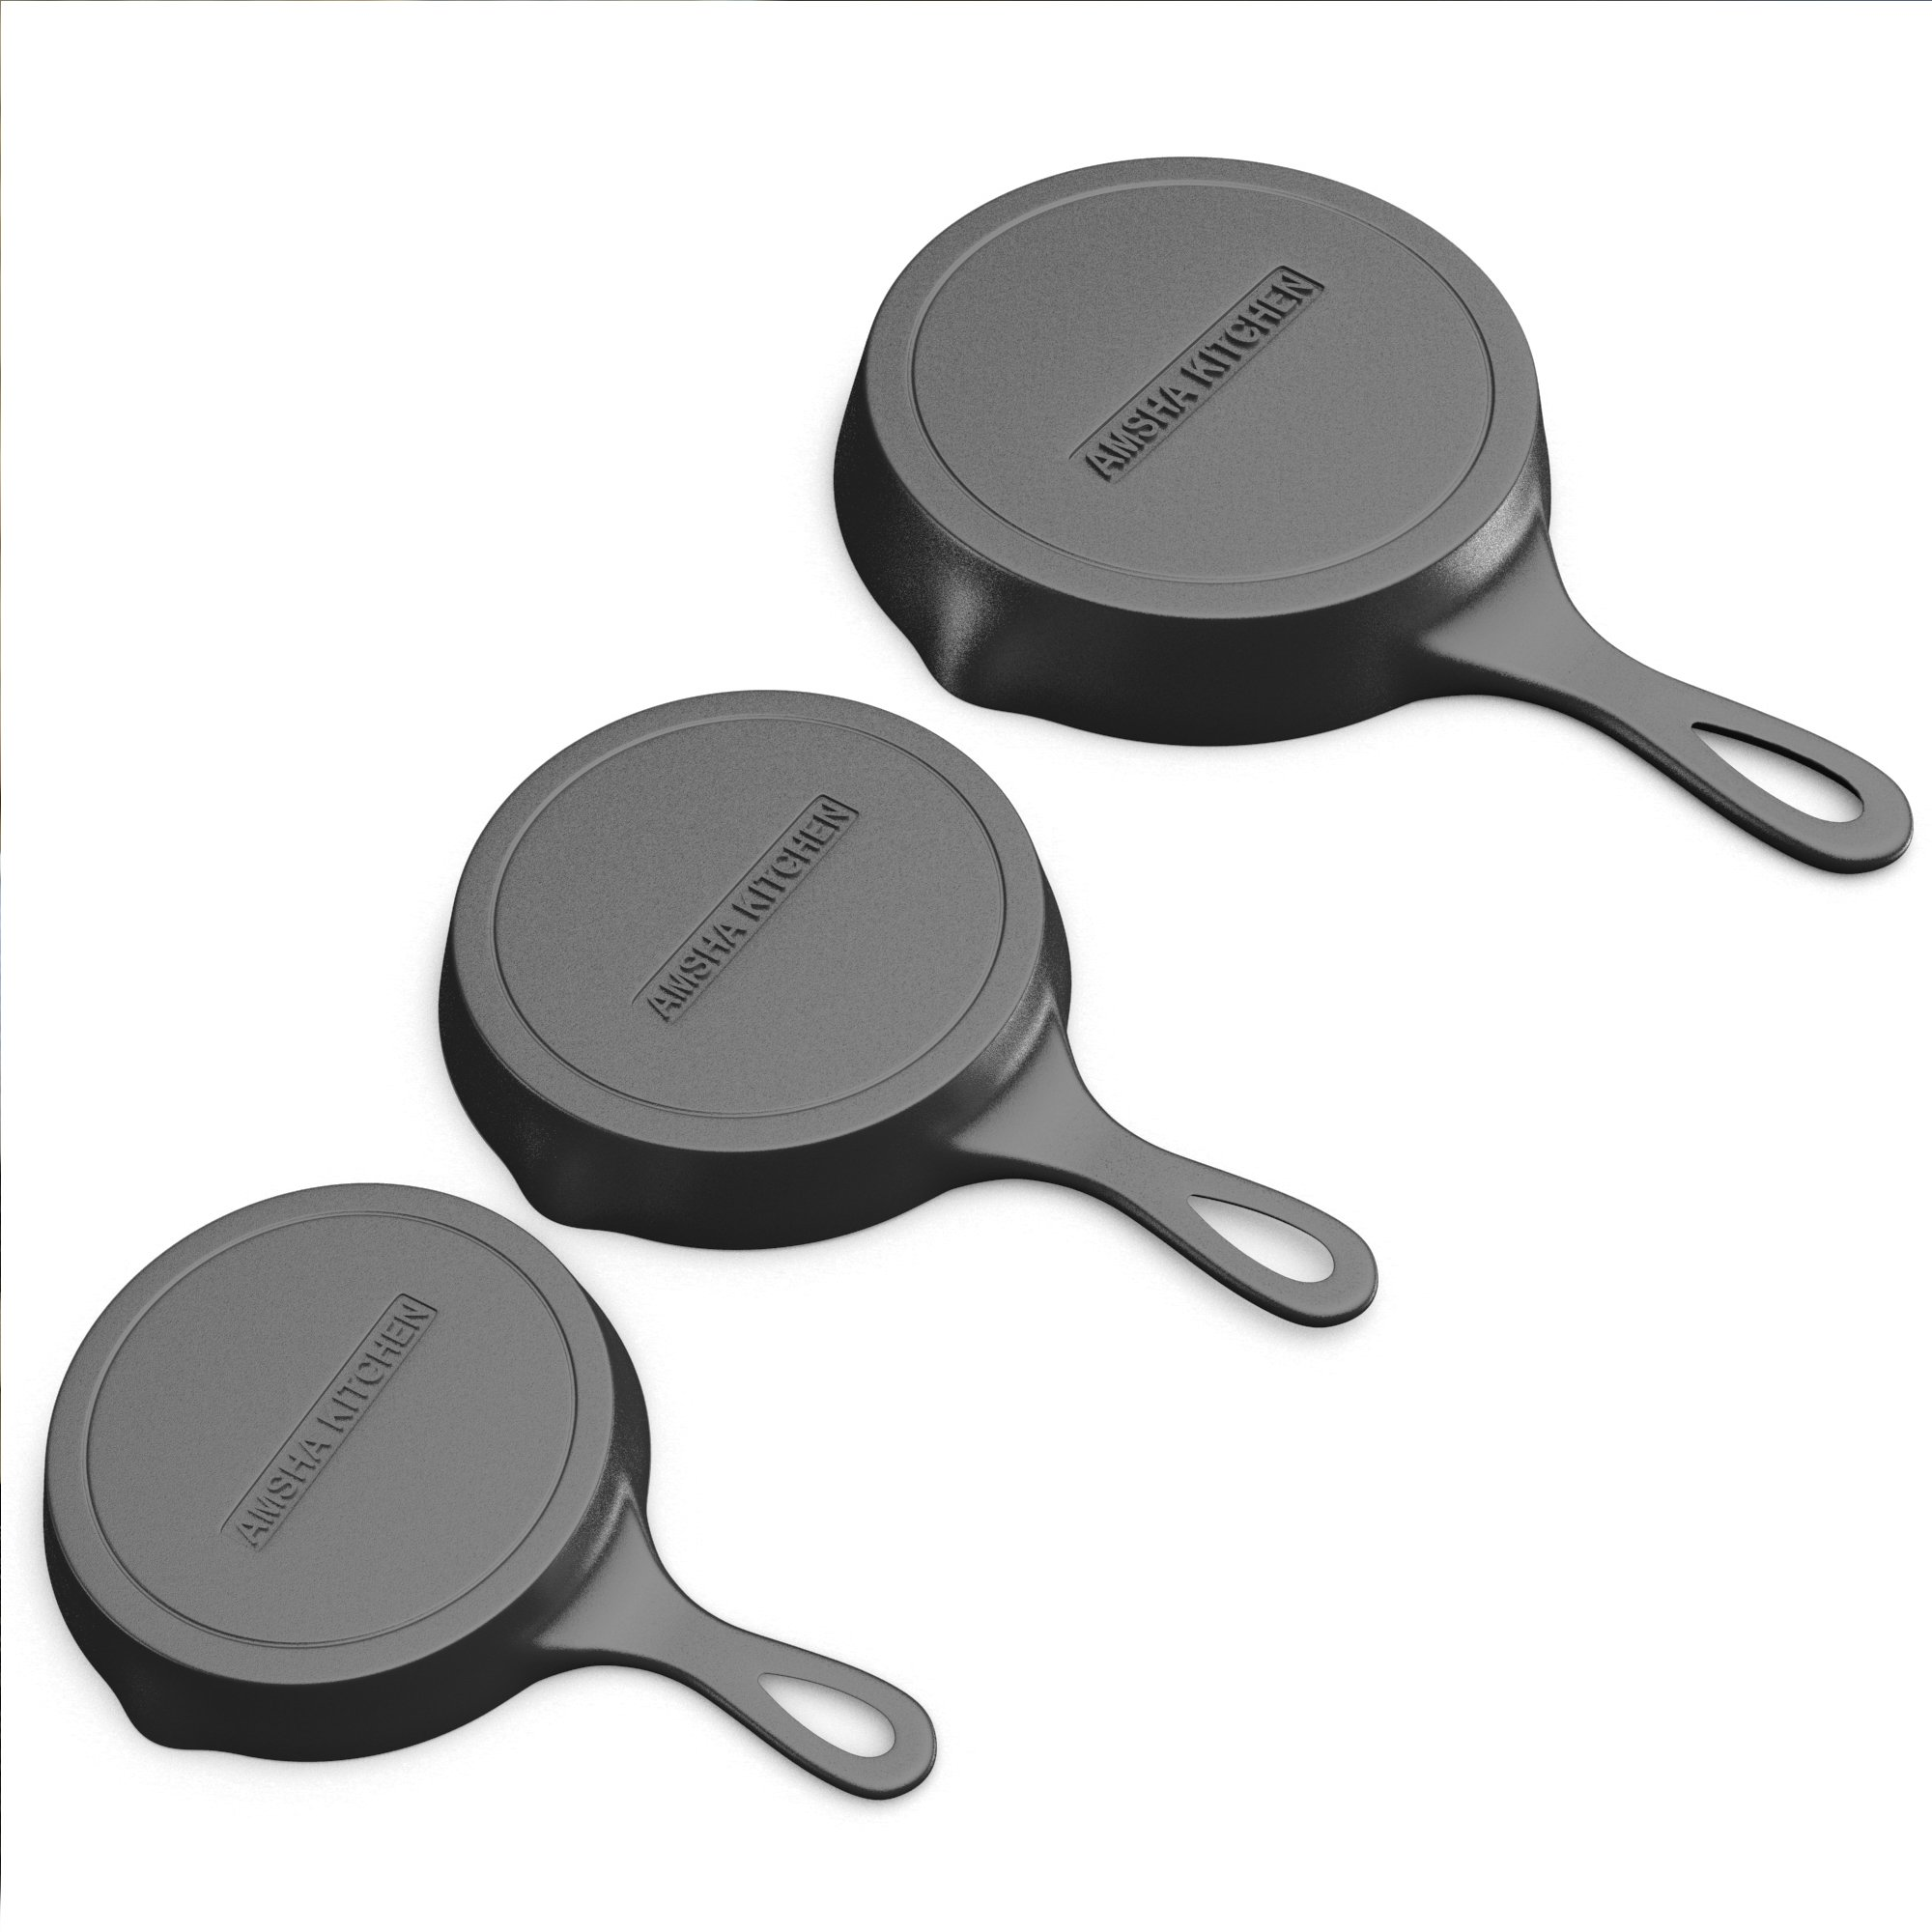 Pre-Seasoned Cast Iron Skillet 3 Piece Set (10, 8 inch & 6 inch Pans) Best Heavy Duty Professional Restaurant Chef Quality Pre Seasoned Pan Cookware For Frying, Saute, Cooking by Amsha Kitchen (Image #7)